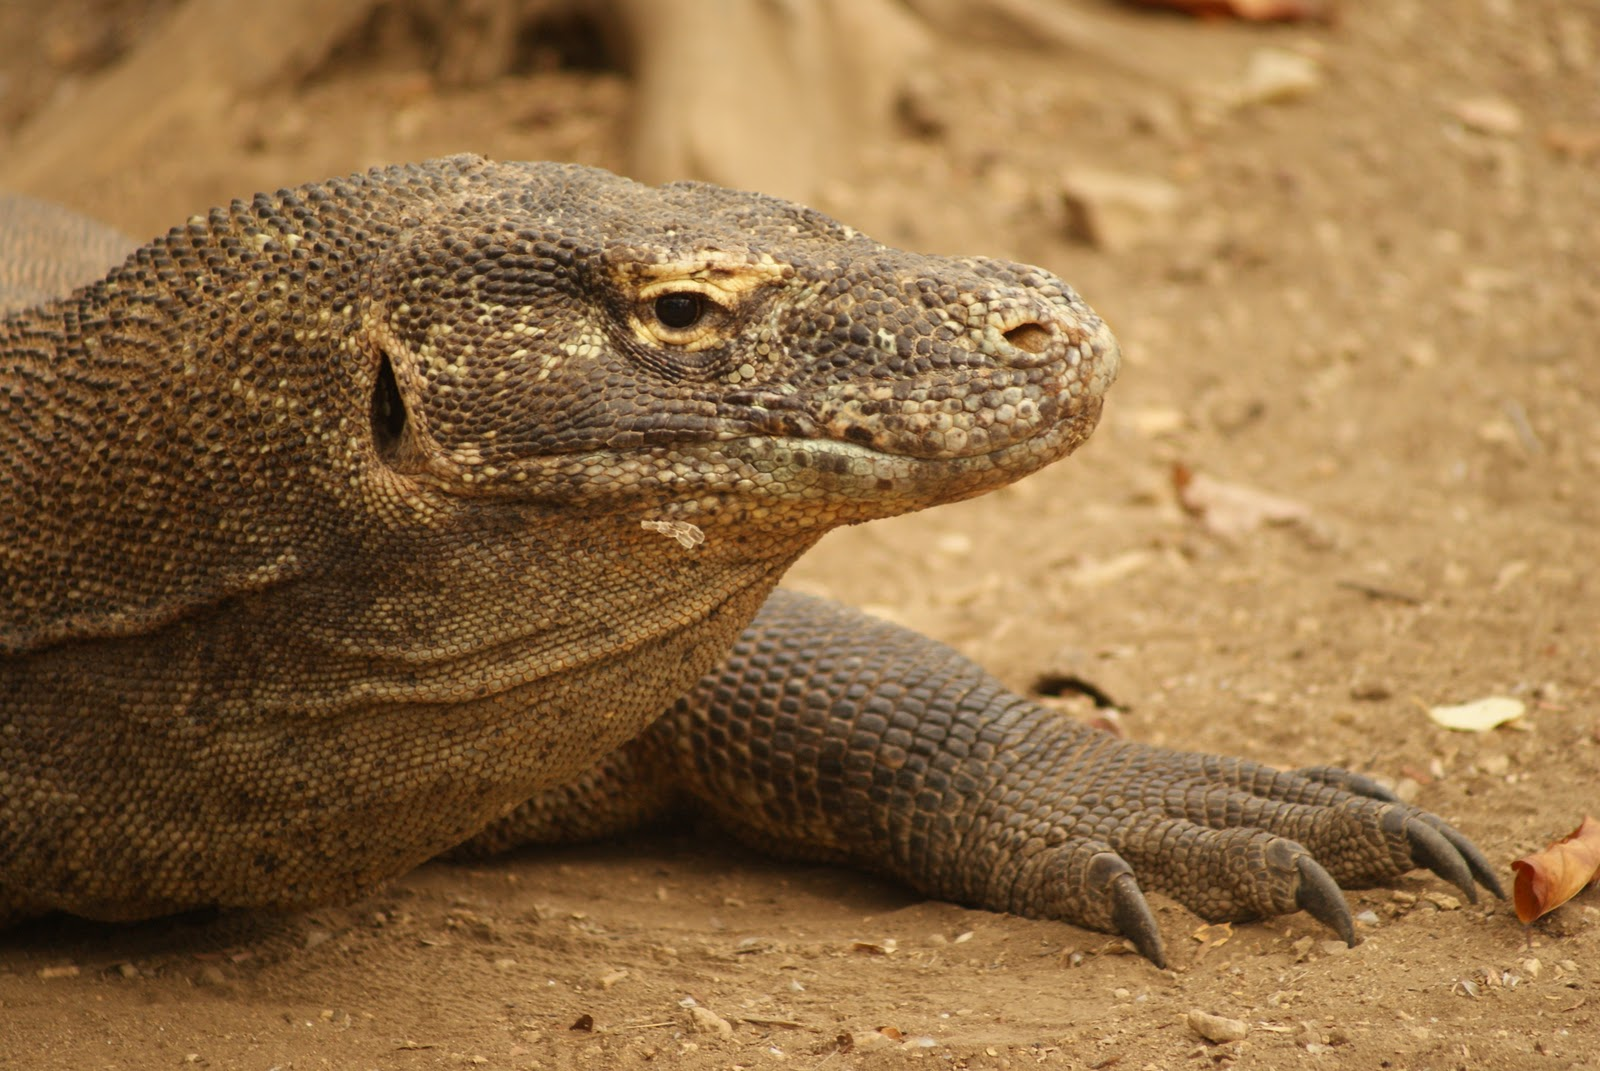 the komodo dragon essay The effectiveness of the komodo dragon bite is a combination of highly specialized serrated teeth and venom, a new study shows the authors also dismiss the widely accepted theory that prey die from septicemia caused by toxic bacteria living in the dragon's mouth.